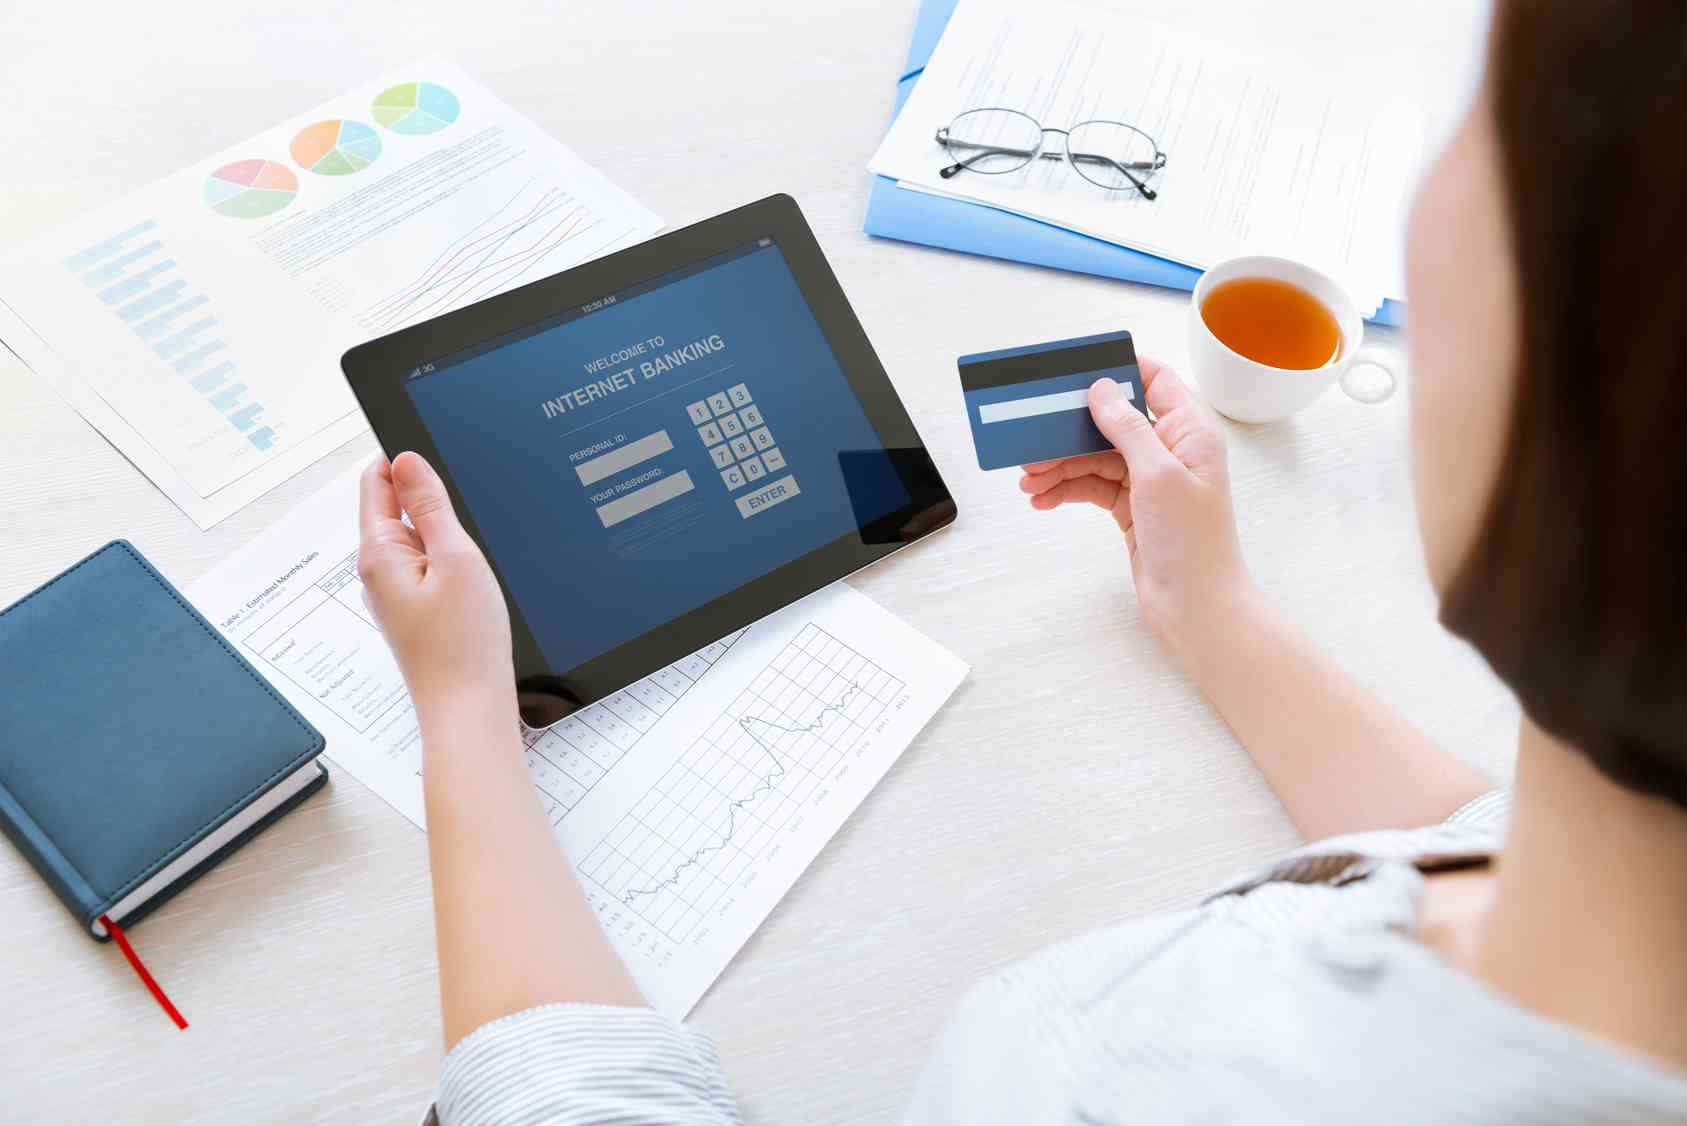 What is Internet Banking?